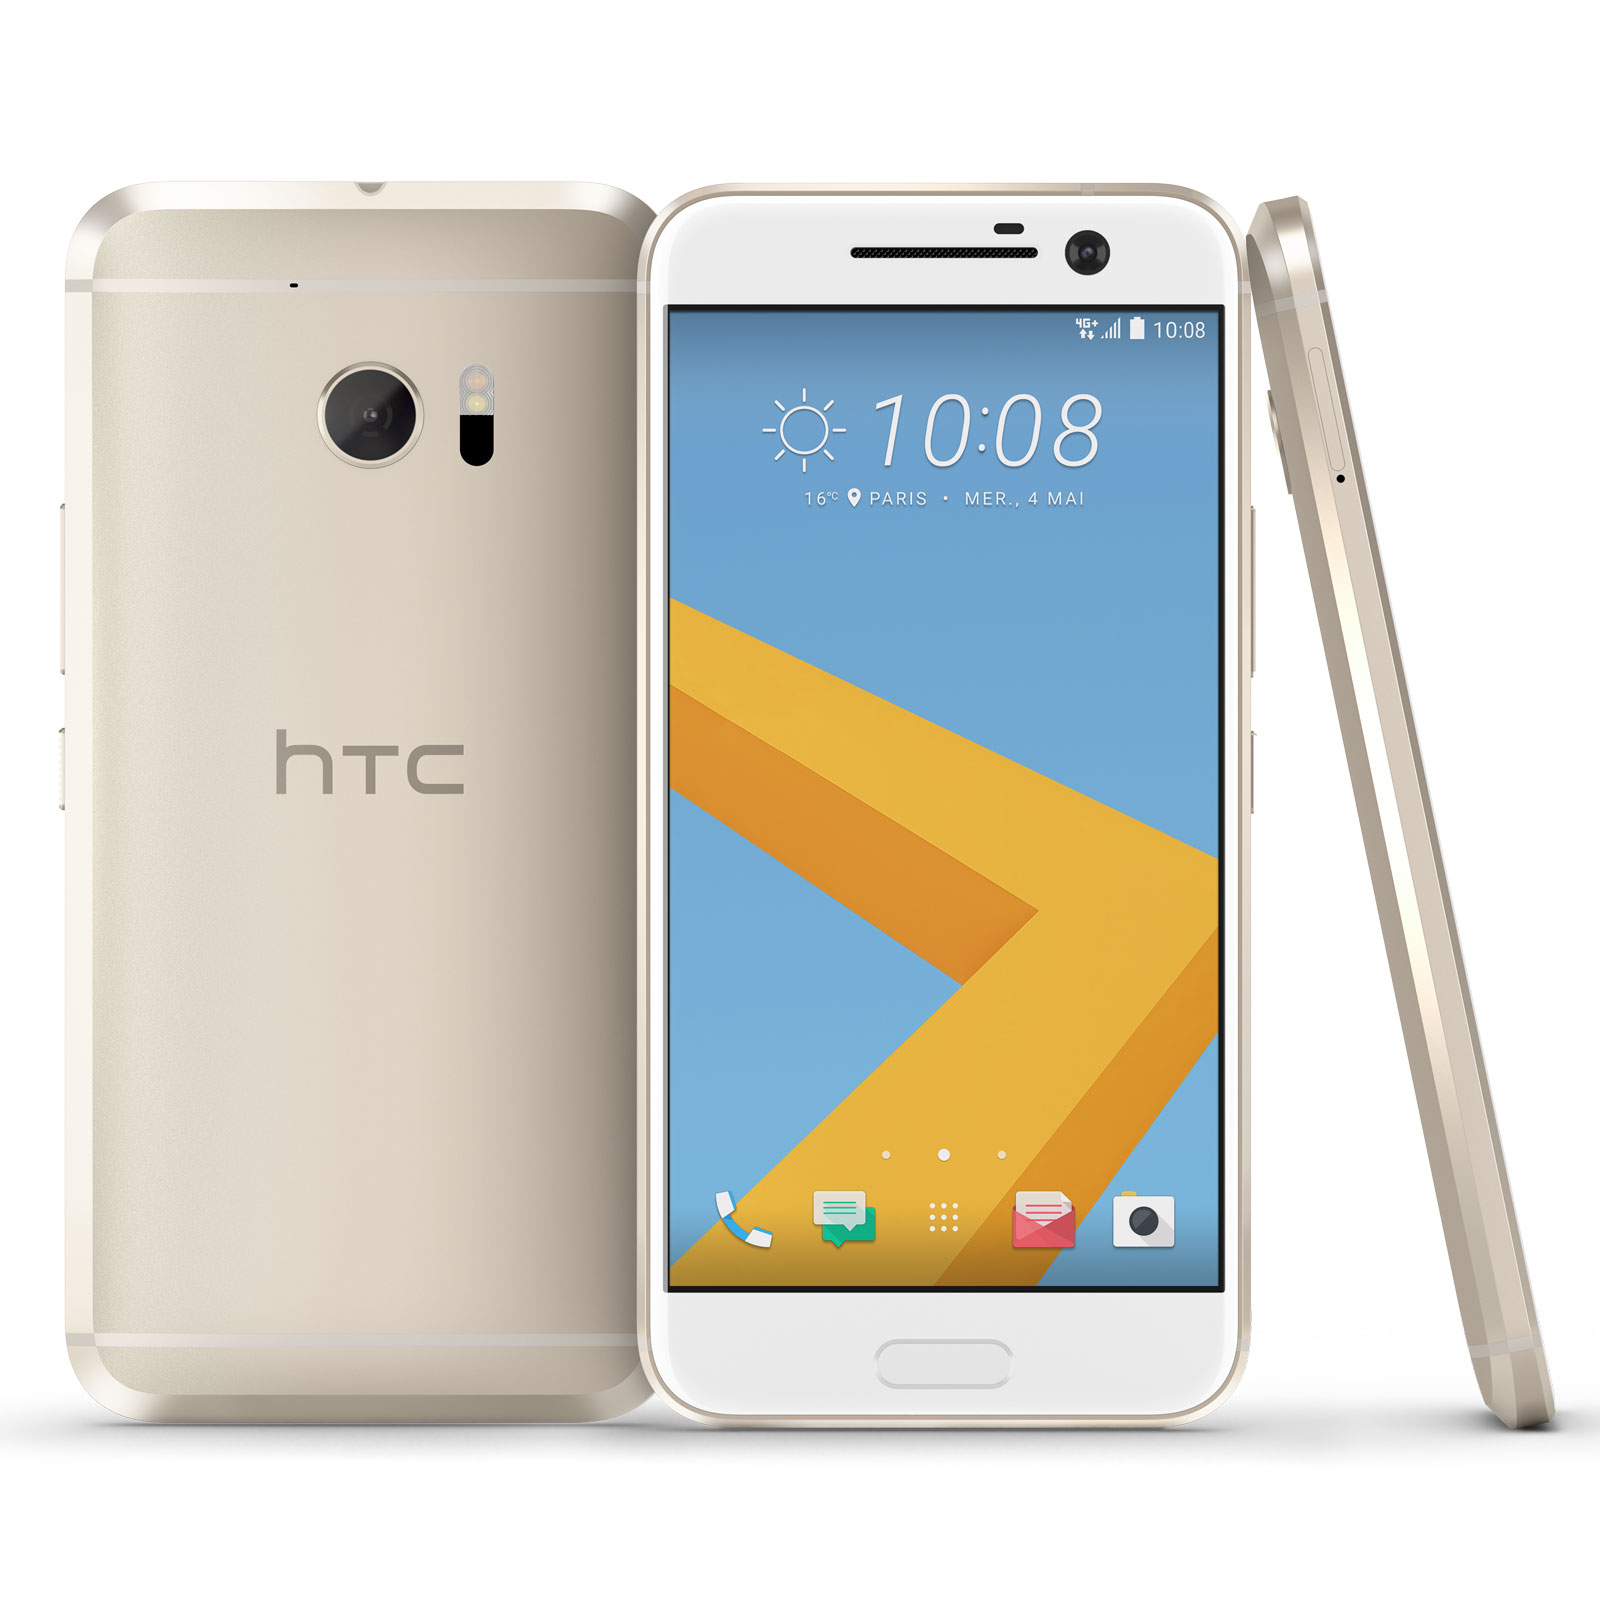 "Mobile & smartphone HTC 10 Or Topaze Smartphone 4G-LTE Advanced - Snapdragon 820 Quad-Core 2.2 Ghz - RAM 4 Go - Ecran tactile 5.2"" 1440 x 2560 - 32 Go - NFC/Bluetooth 4.2 - 3000 mAh - Android 6.0"